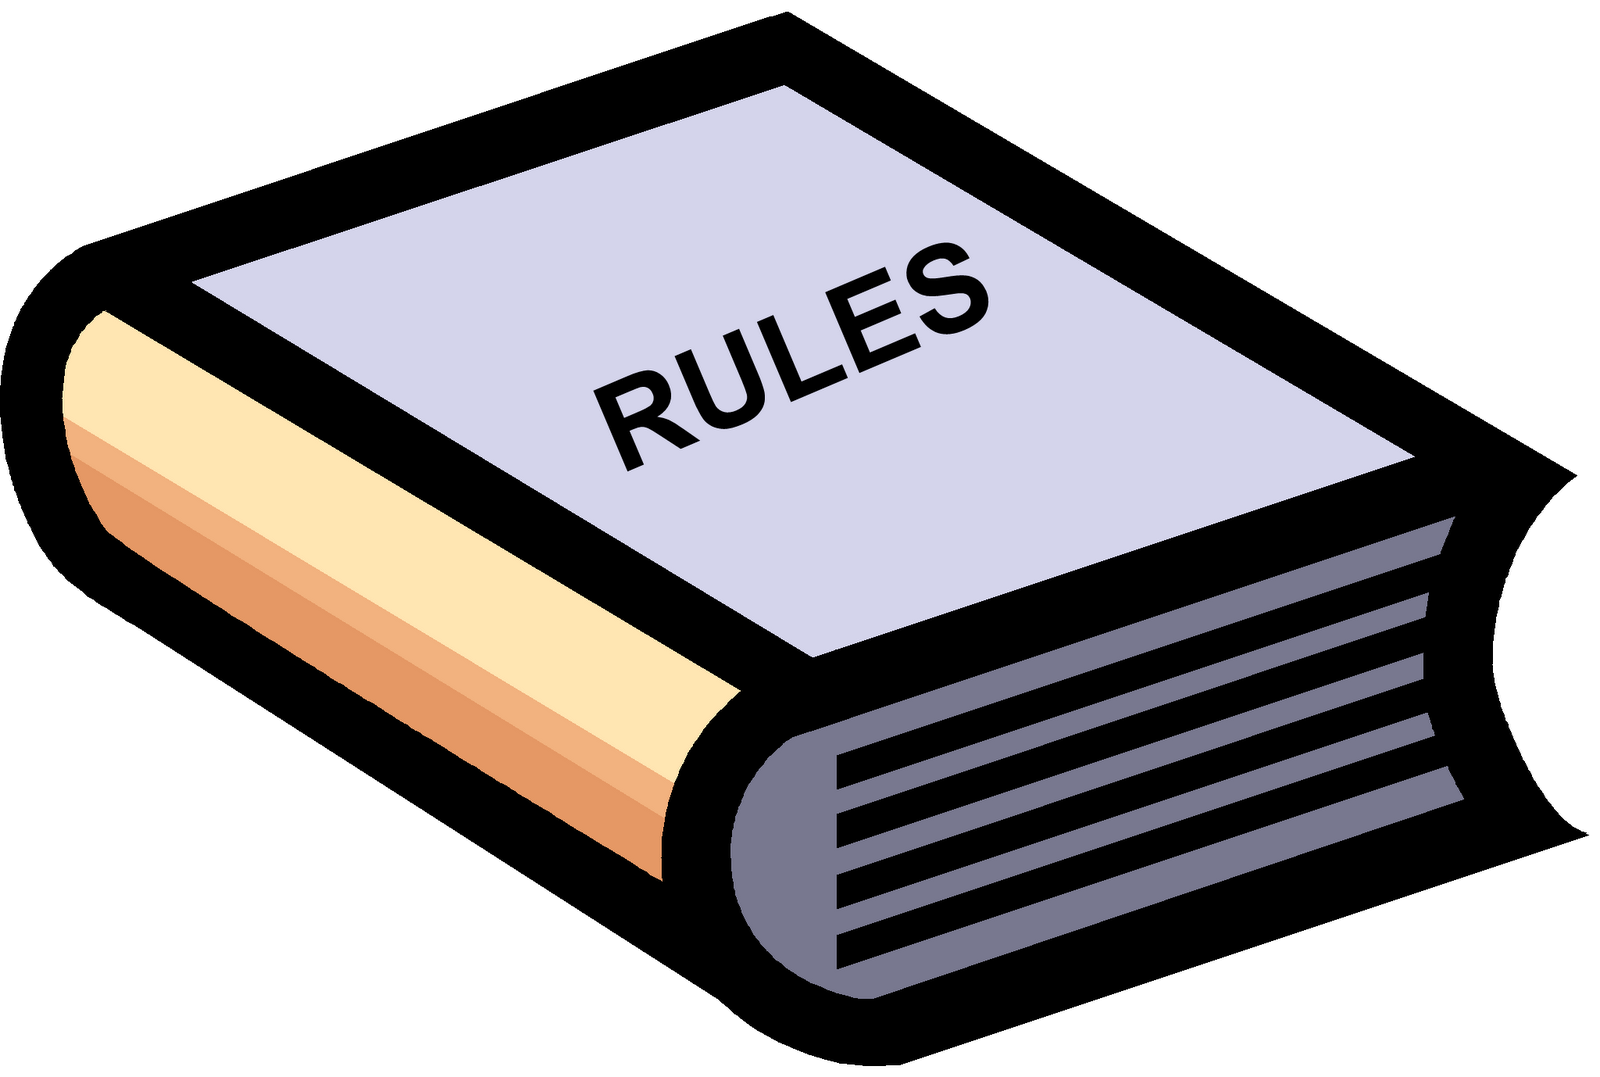 Rules clipart government regulation. And regulations clip art